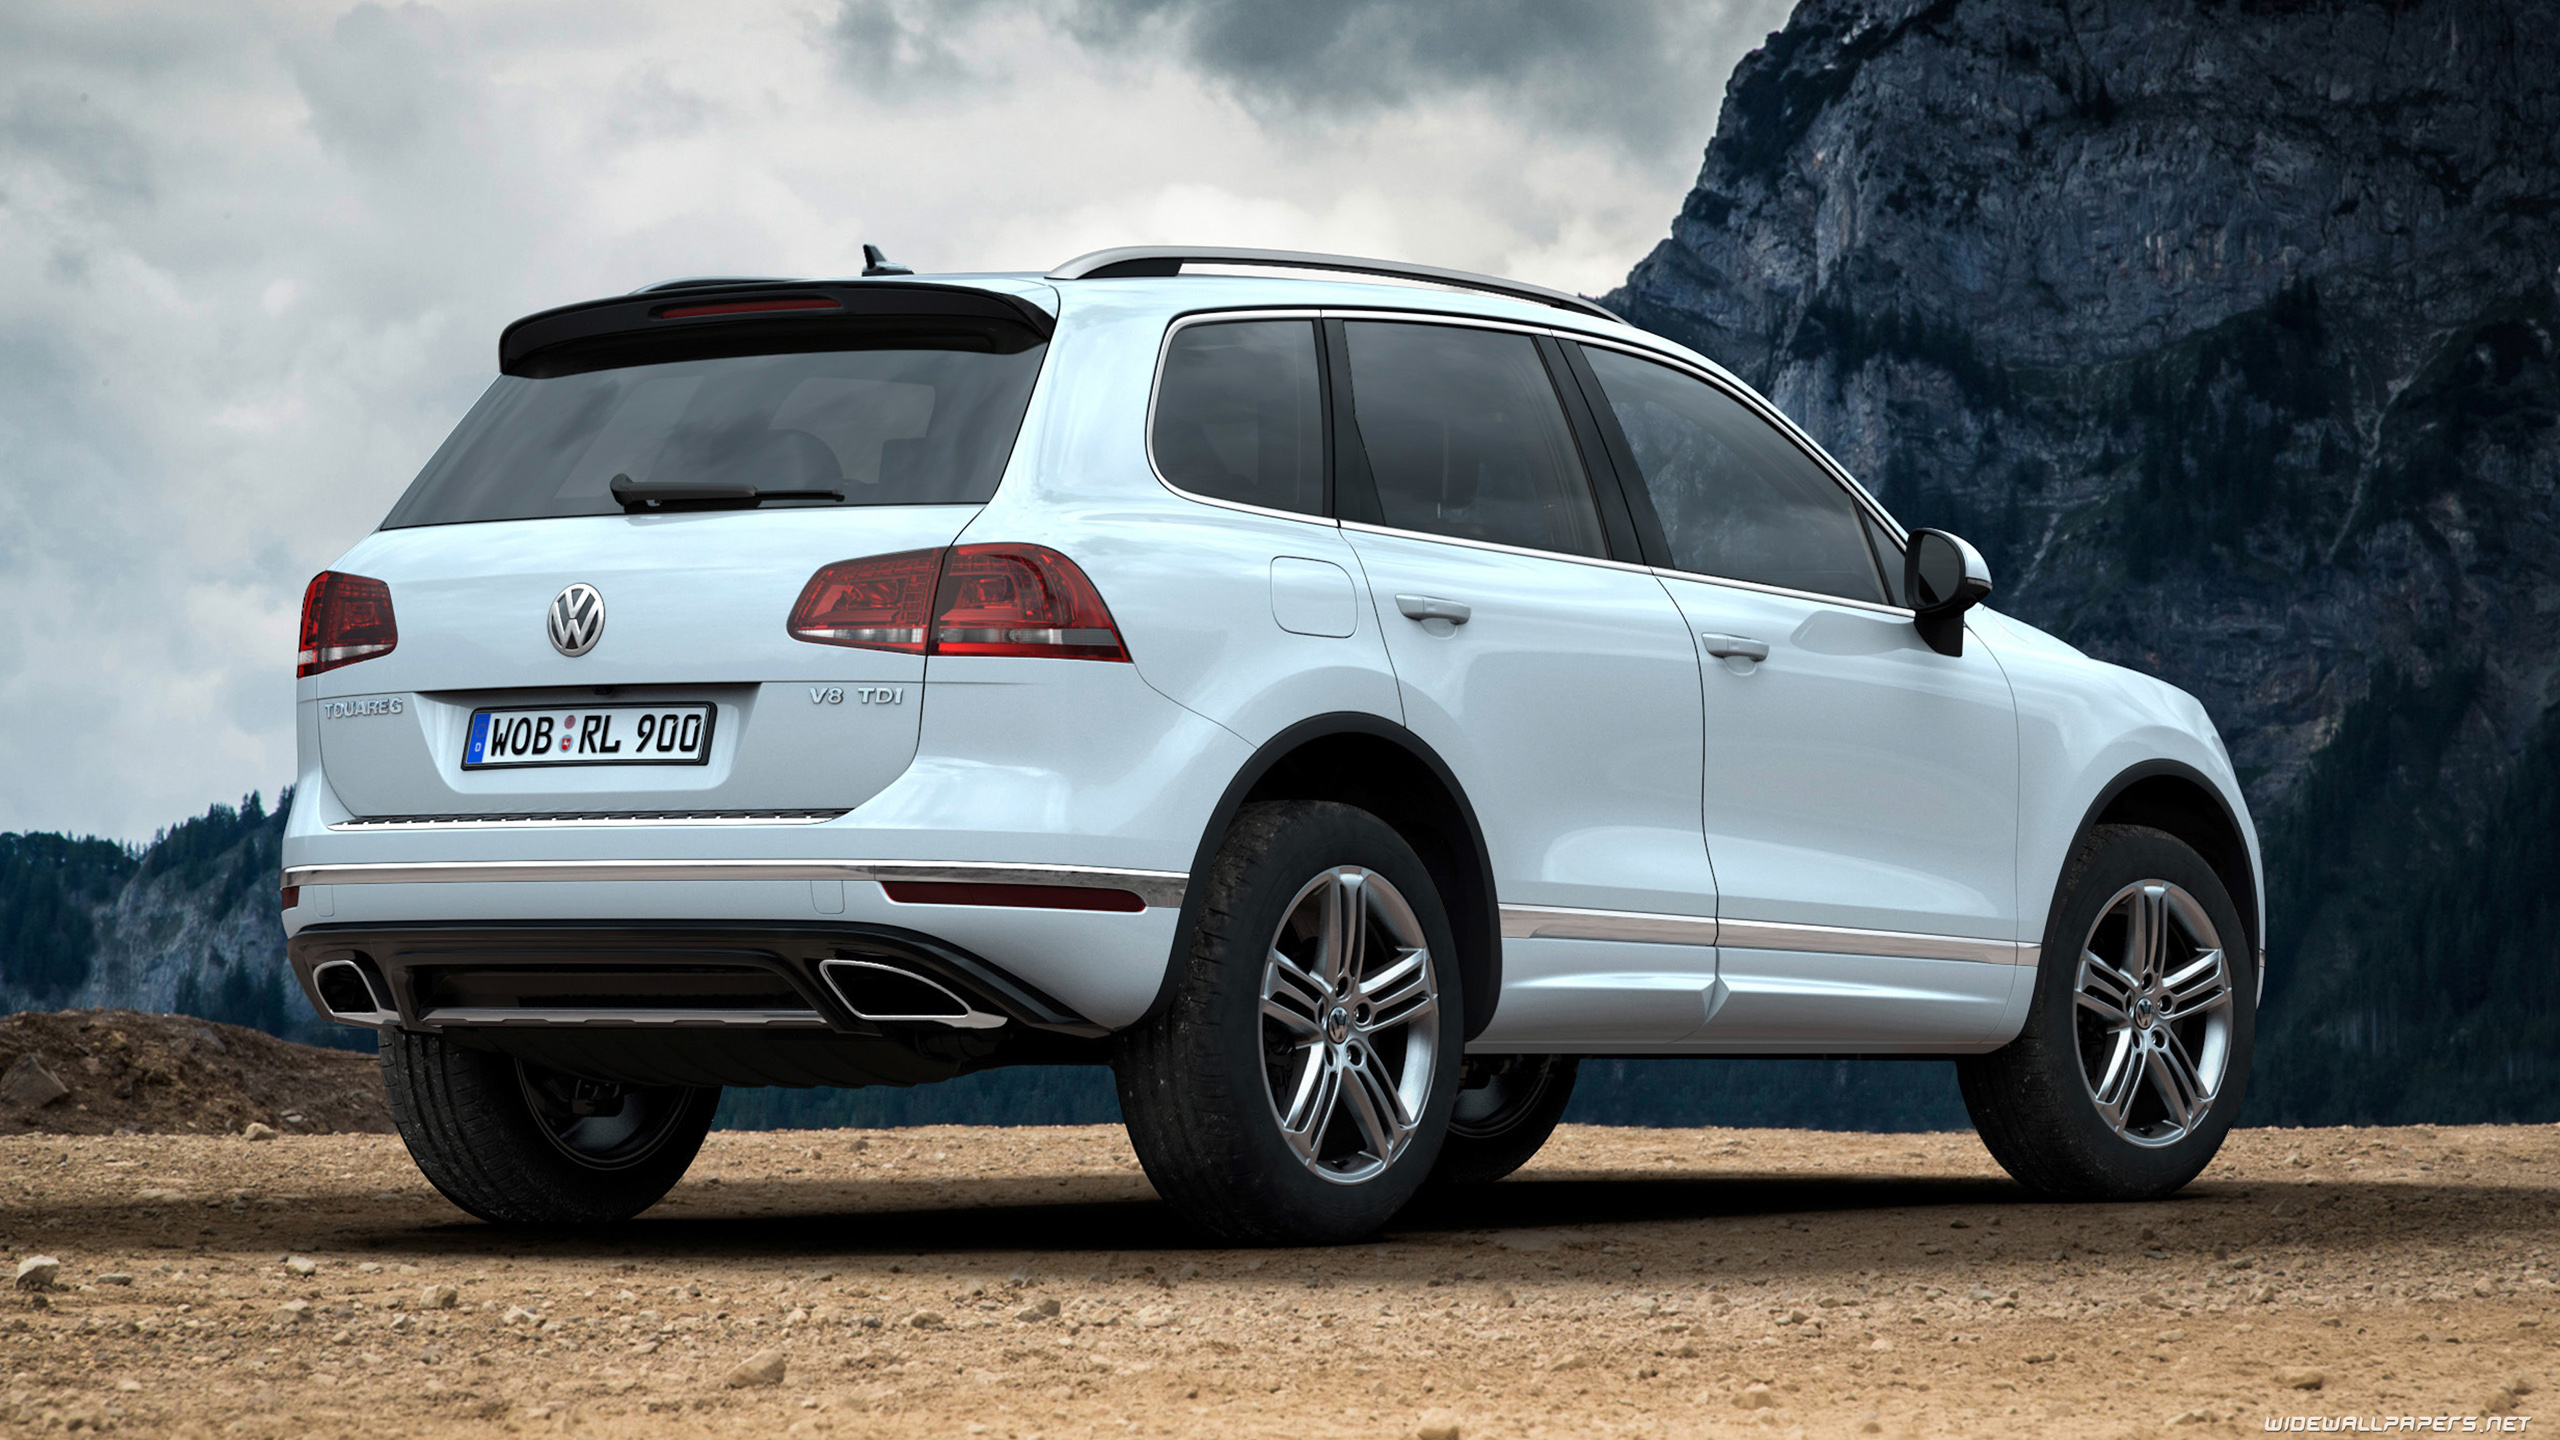 volkswagen touareg cars desktop wallpapers 4k ultra hd. Black Bedroom Furniture Sets. Home Design Ideas